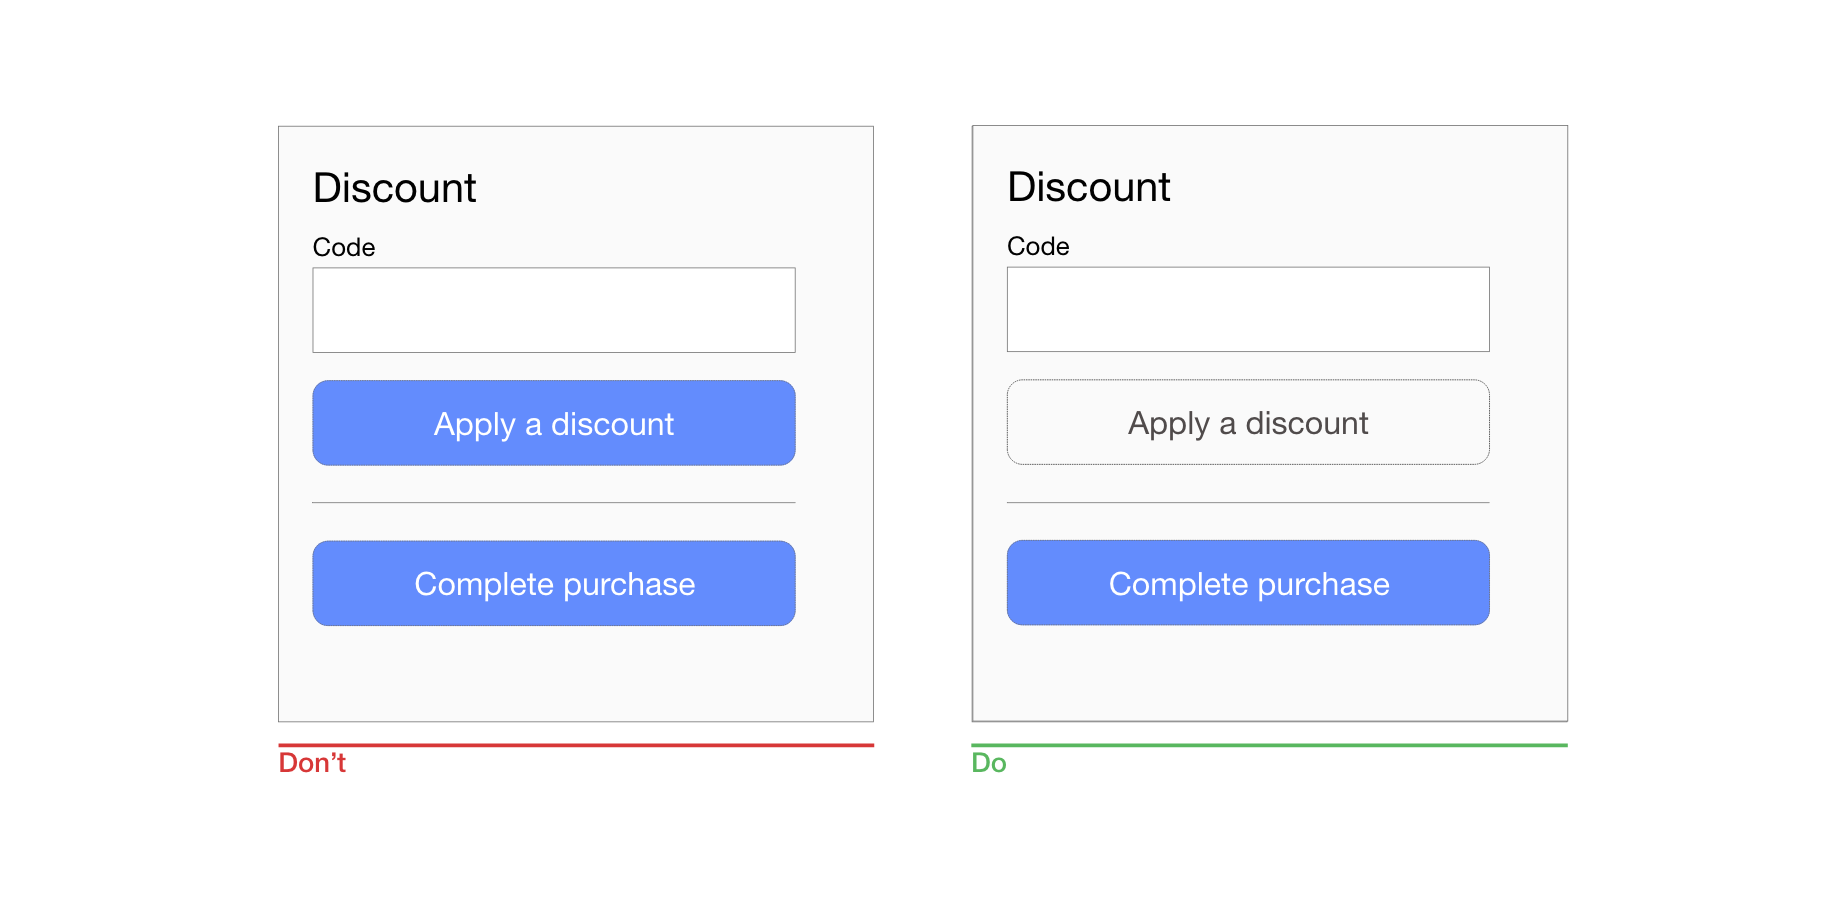 Best Practices For Mobile Form Design — Smashing Magazine